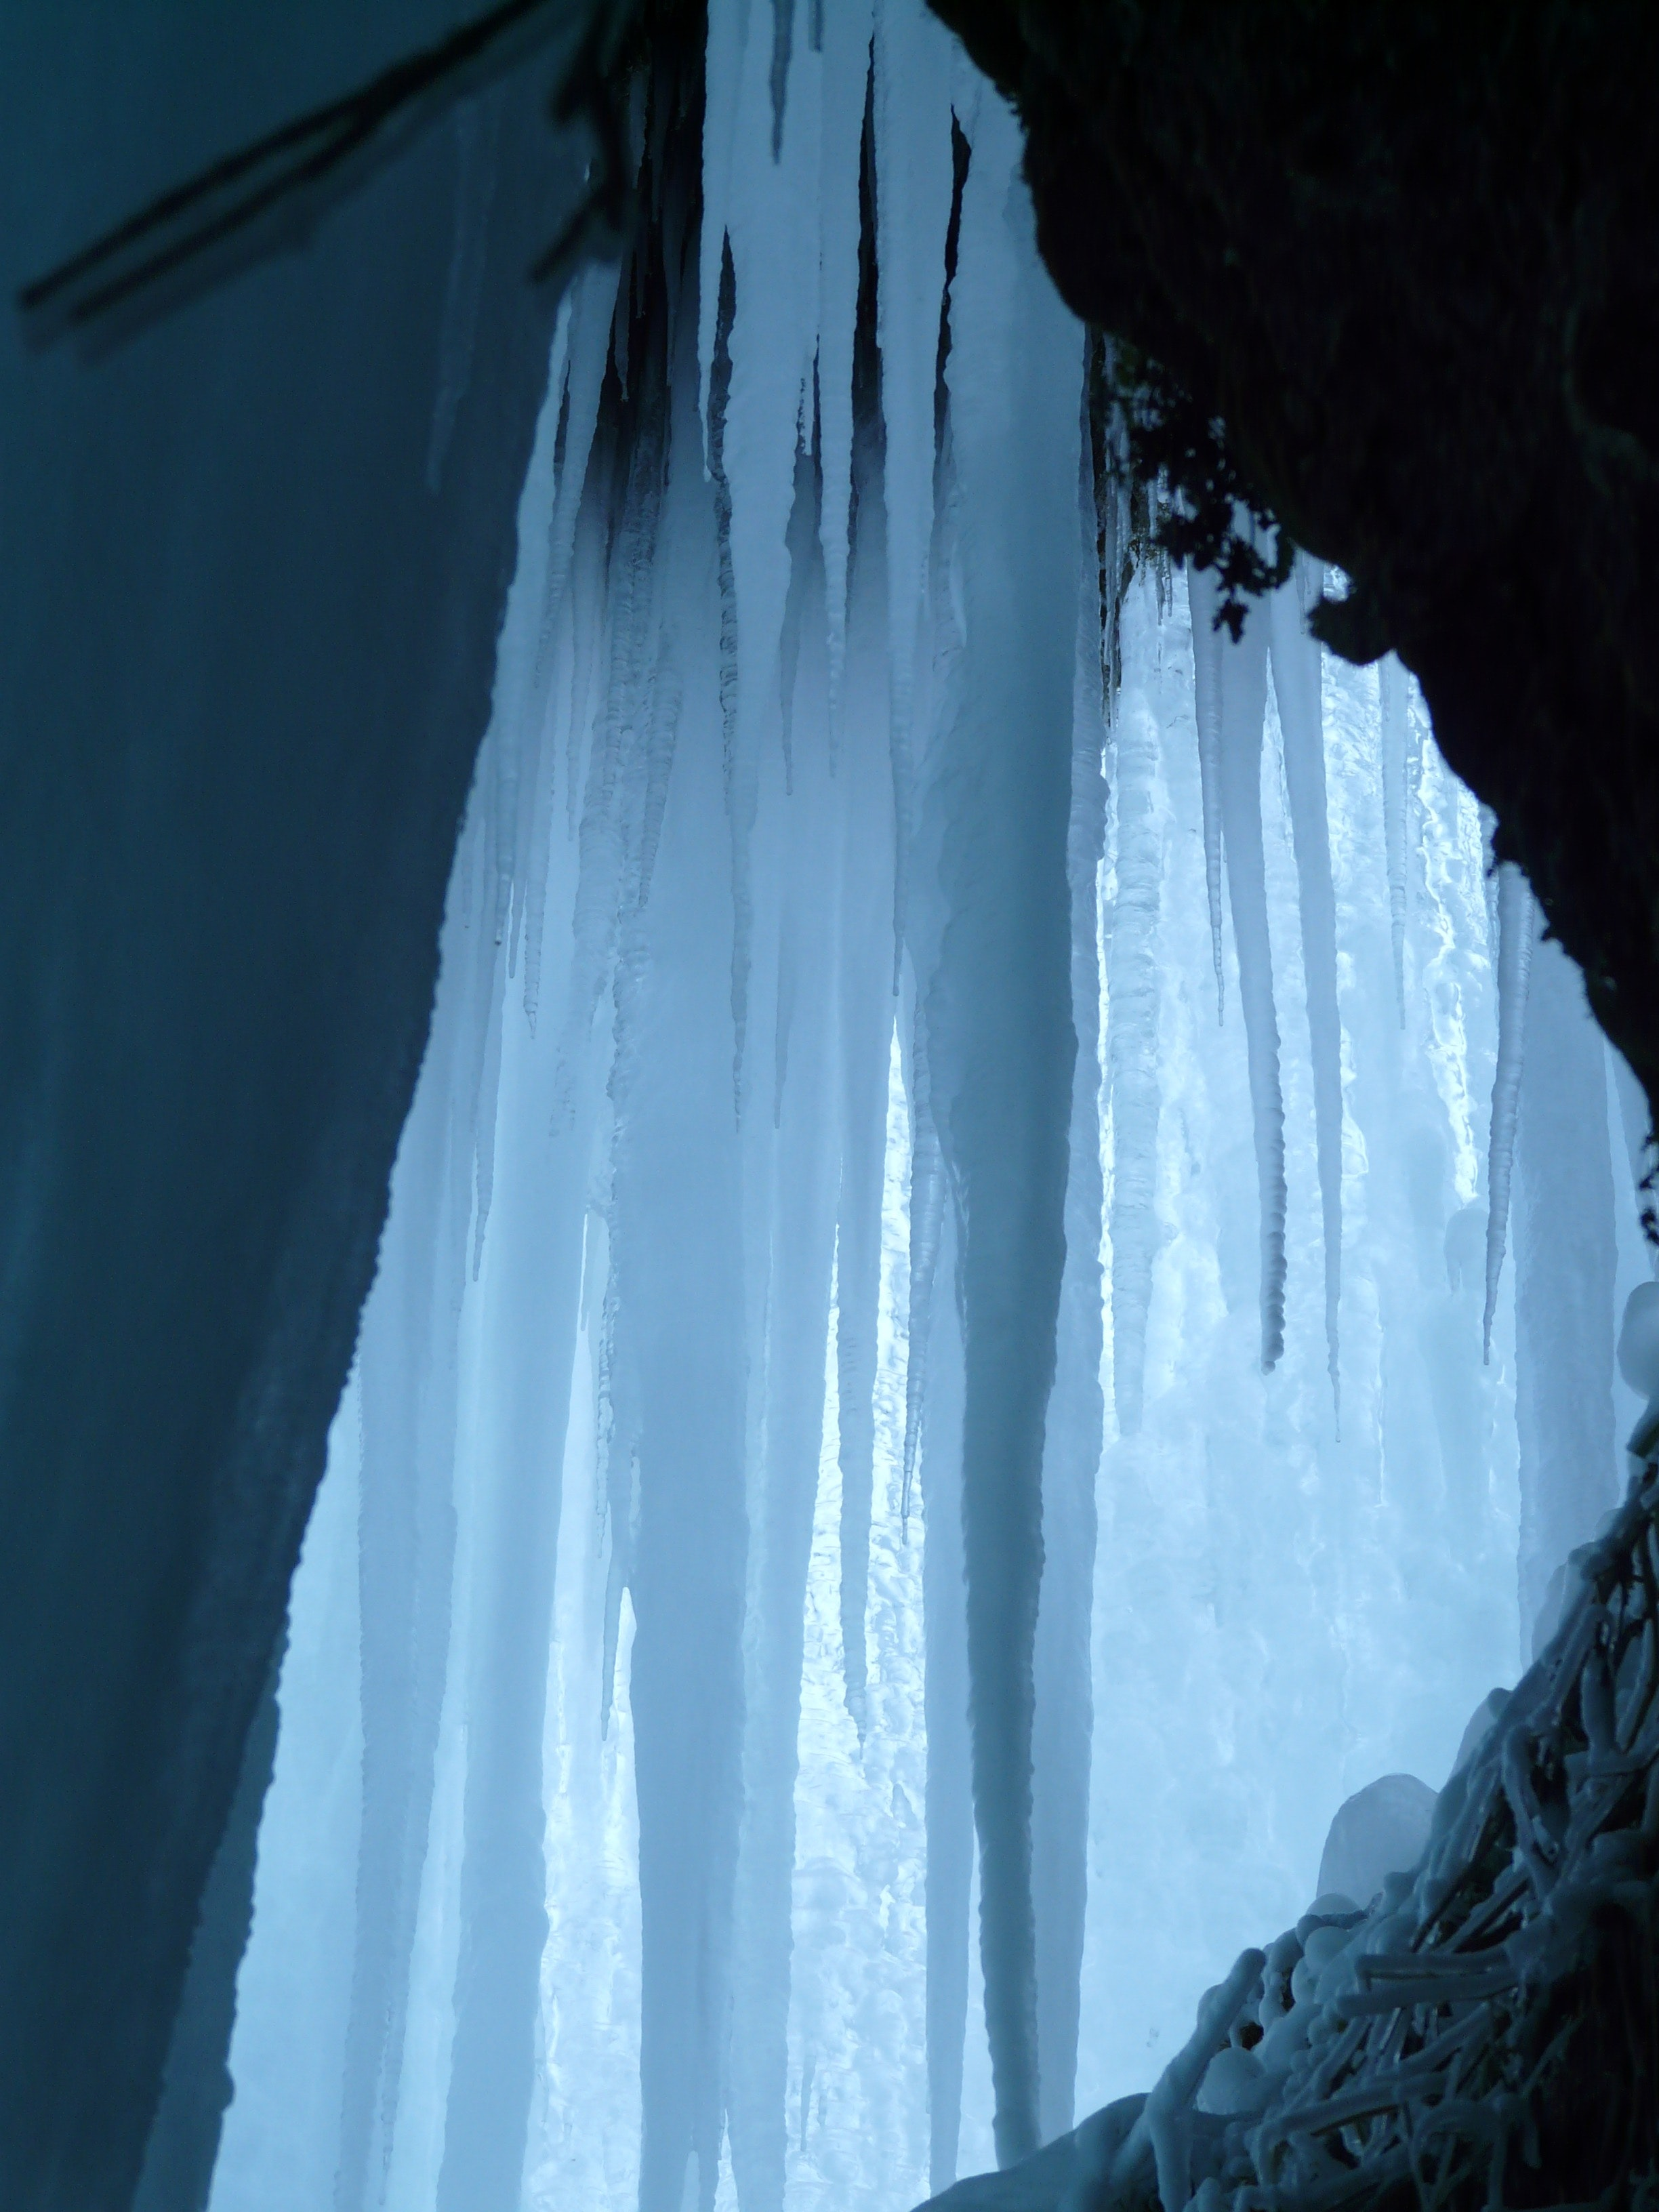 White Ice during Daytime, Cave, Cold, Formation, Frozen, HQ Photo